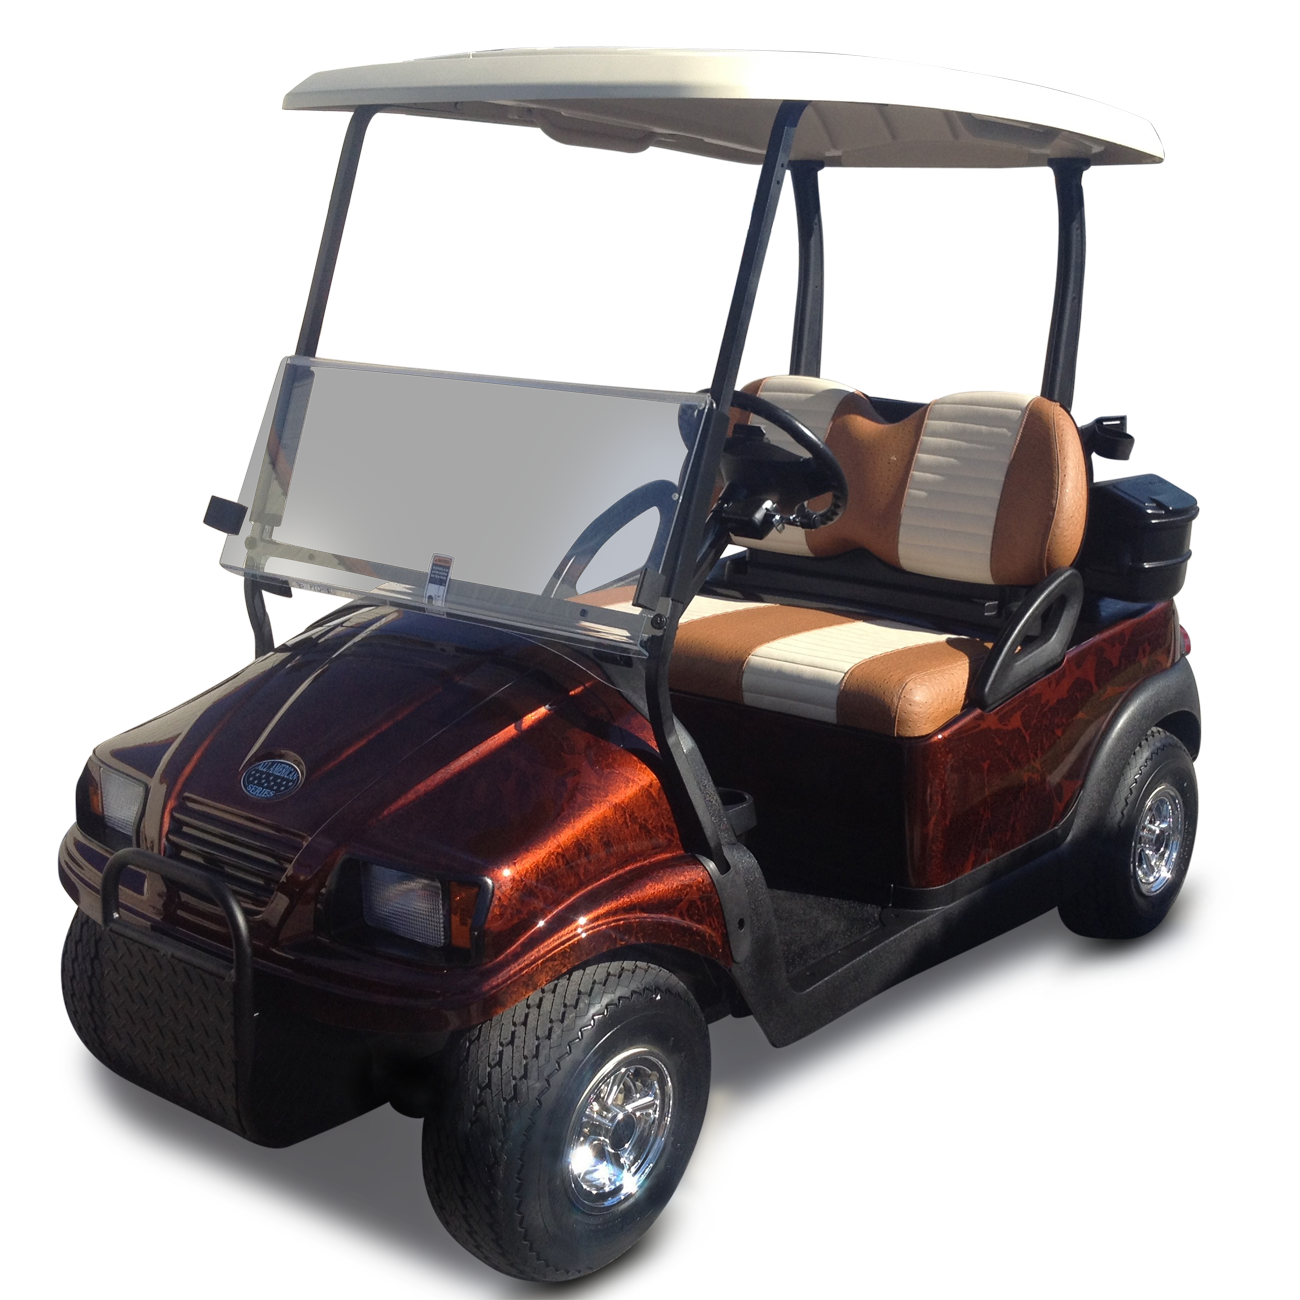 Copy of R2Golf (1).png